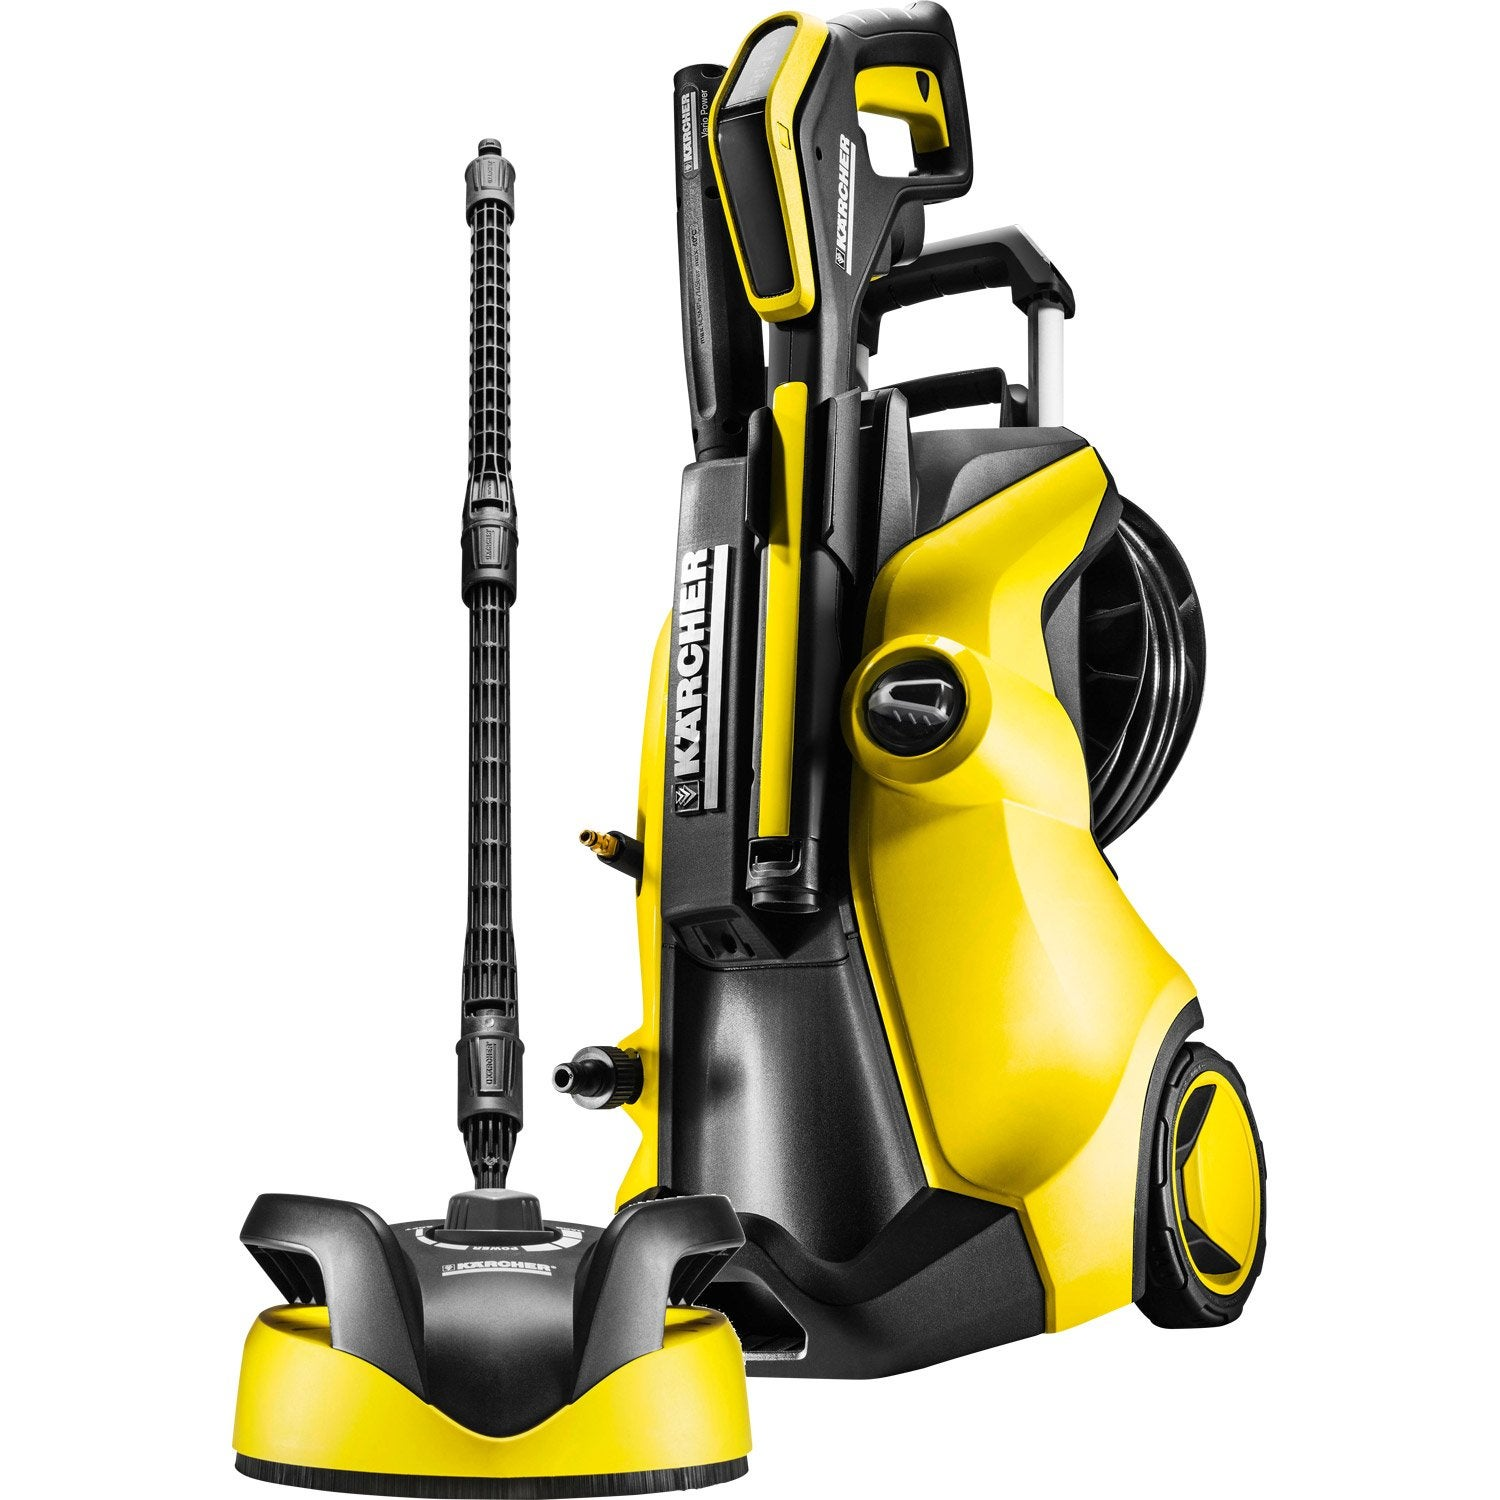 Nettoyeur haute pression karcher k5 premium full control home 2100w 145 bar - Karcher leroy merlin ...